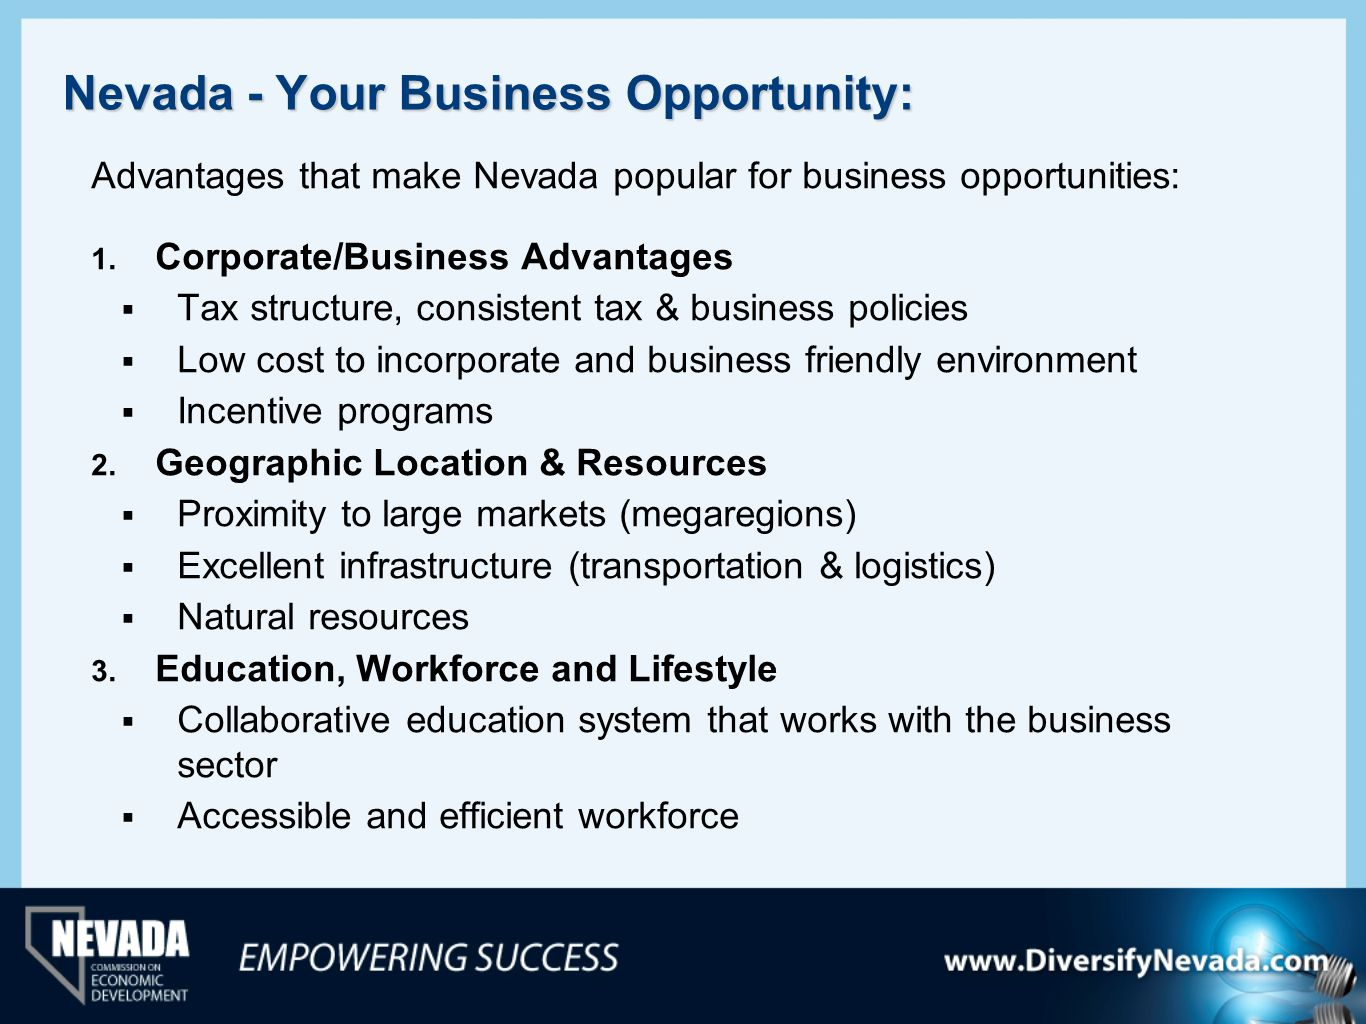 Nevada - Your Business Opportunity: